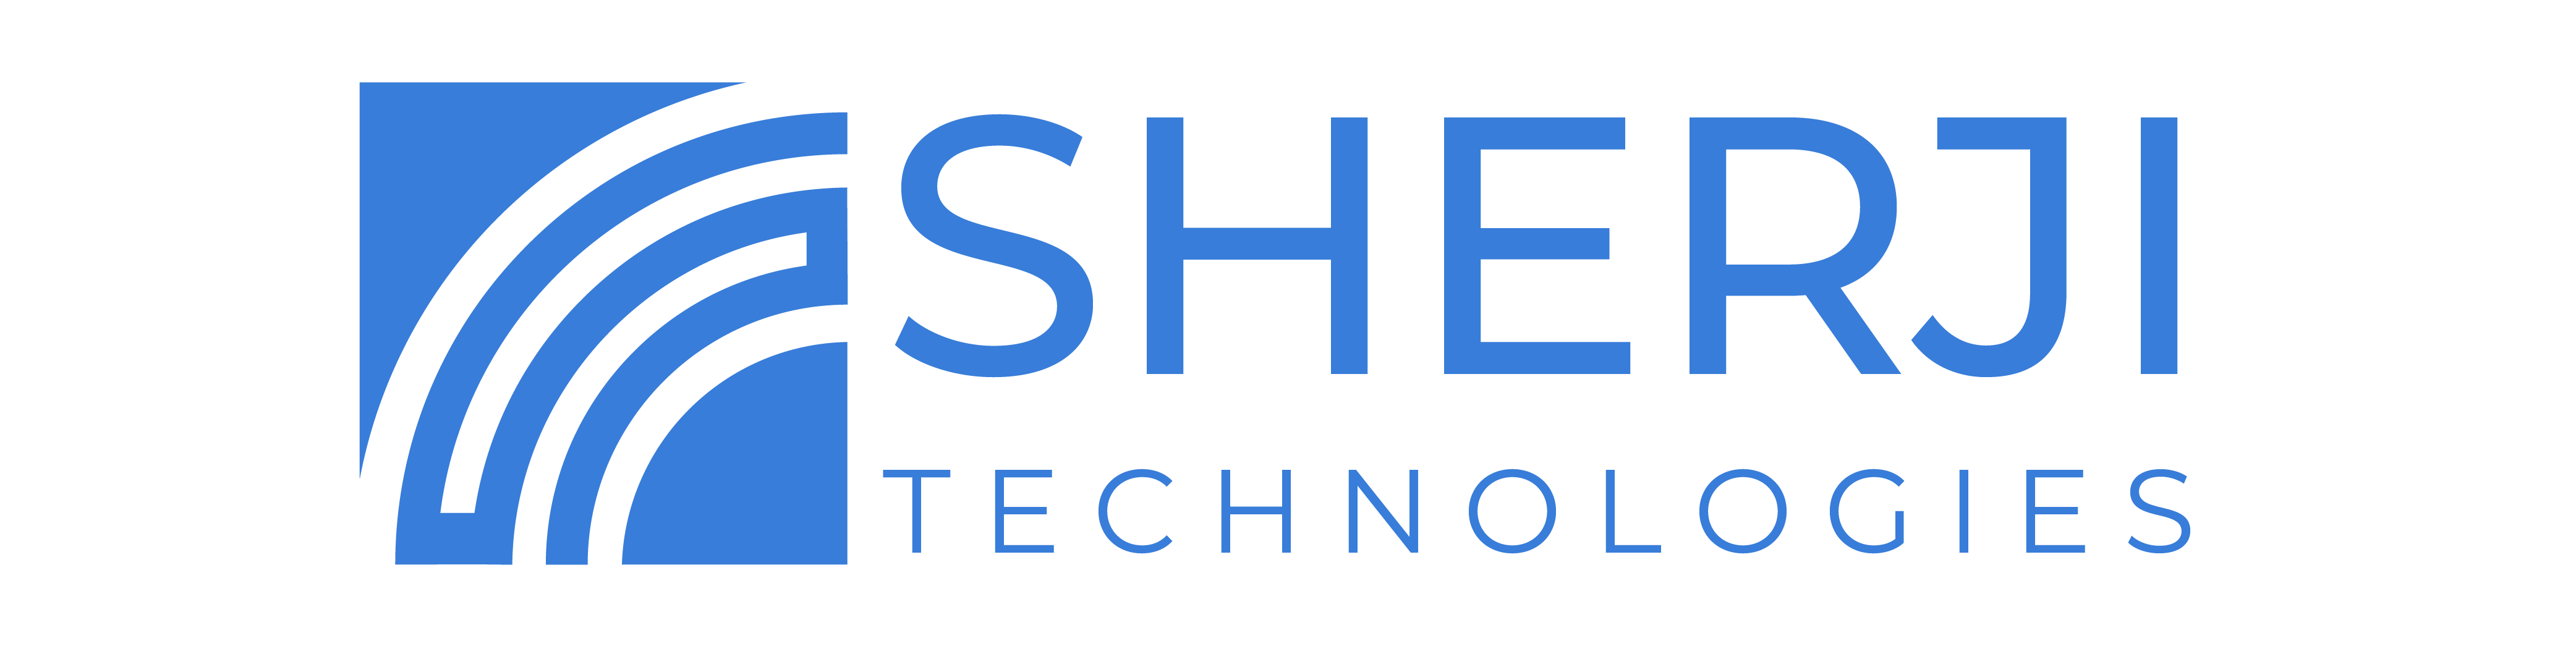 Sherji Technologies - Artificial Intelligence company logo